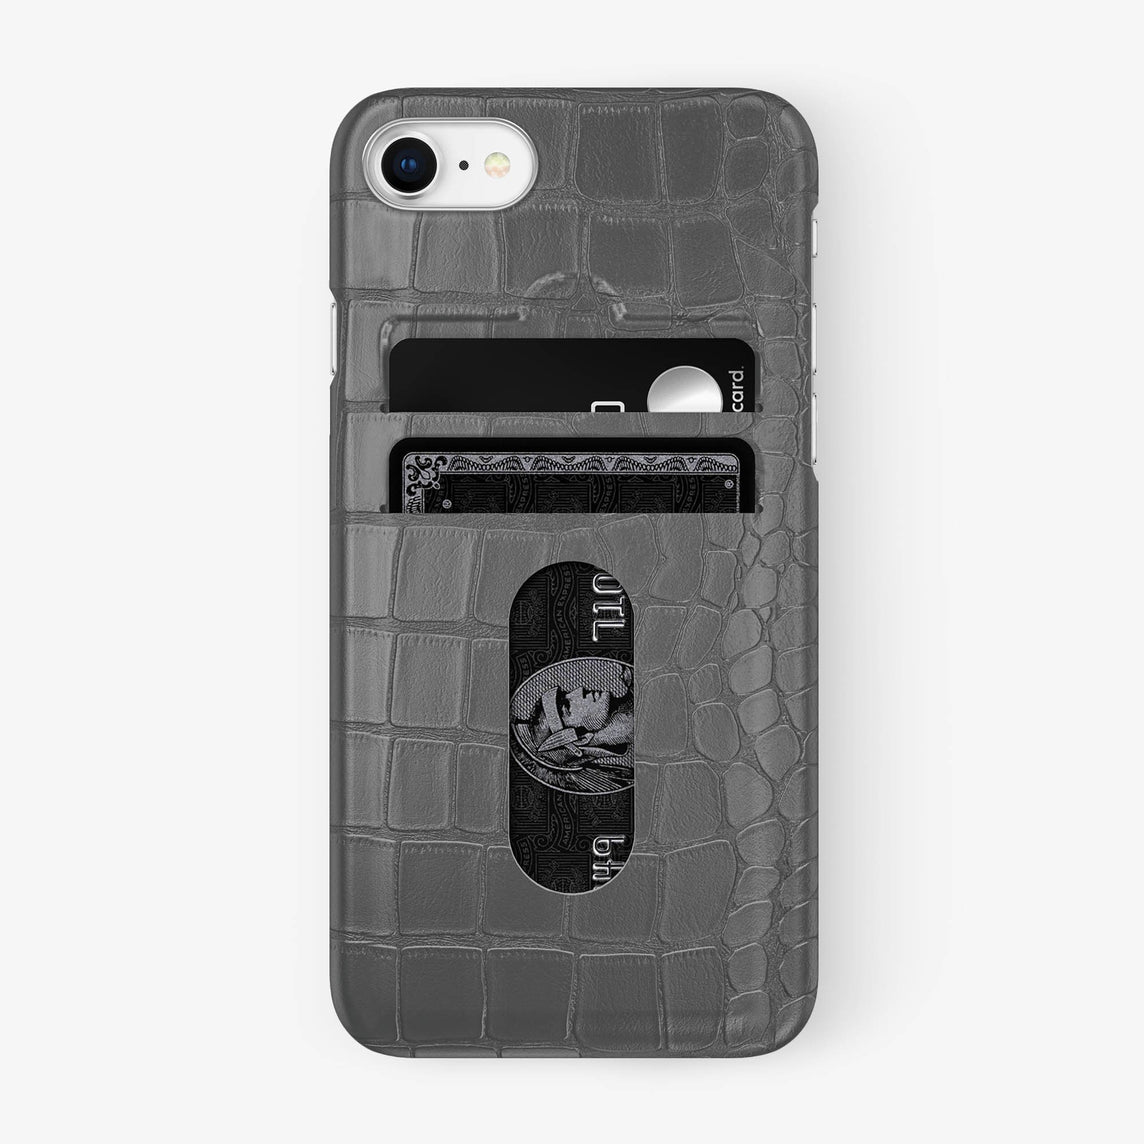 Alligator Card Holder Case iPhone 7/8 | Grey - Stainless Steel - Hadoro